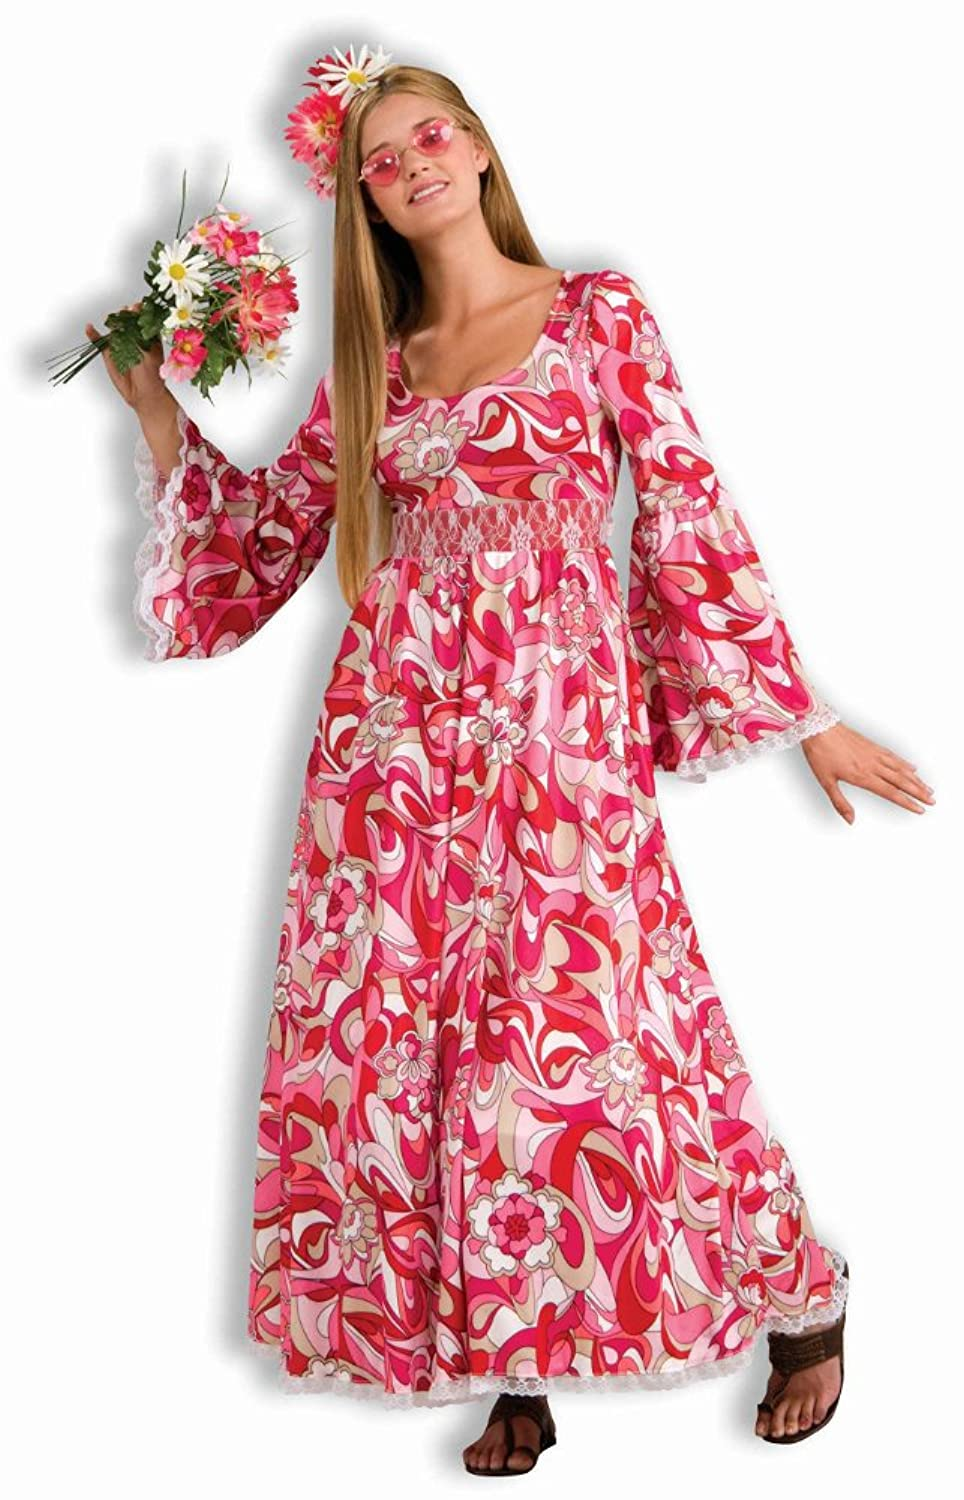 Amazon.com Womens 70s Outfit Long Hippie Dress Halloween Costume Toys u0026 Games  sc 1 st  Amazon.com & Amazon.com: Womens 70s Outfit Long Hippie Dress Halloween Costume ...